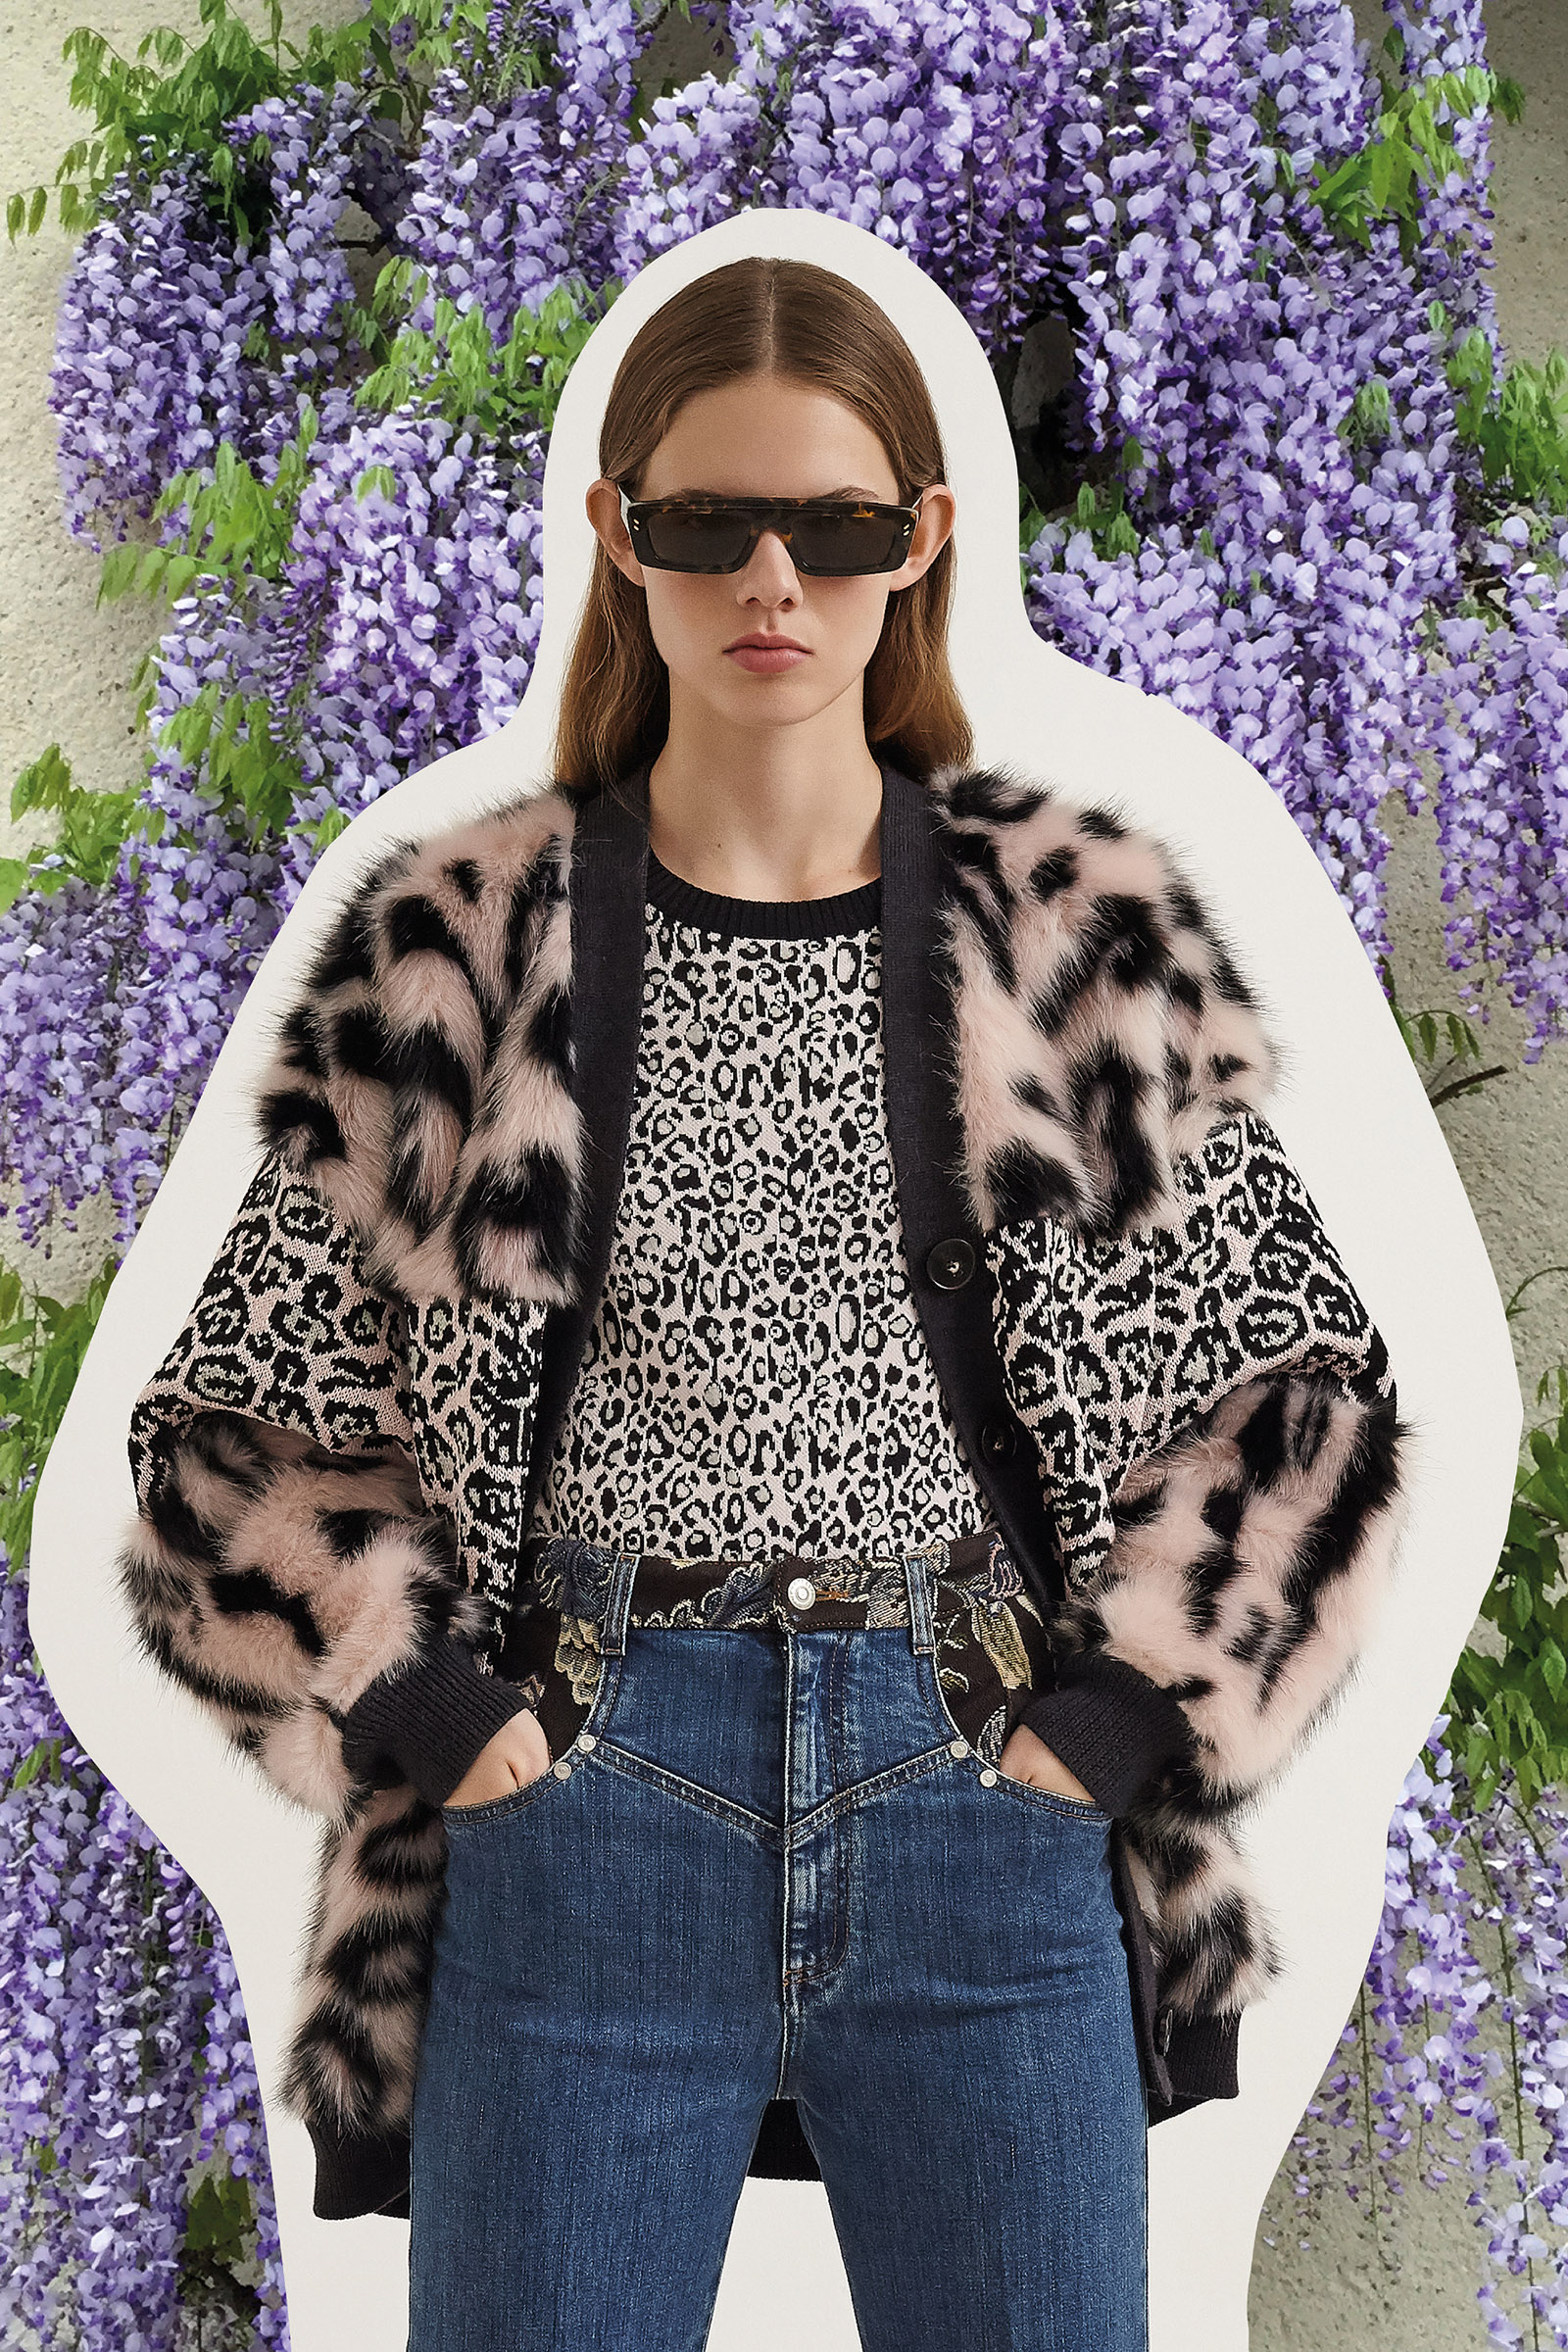 A 'fur-free-fur' cardigan from Stella McCartney's Resort 2020 line, which will feature a sustainable capsule collection